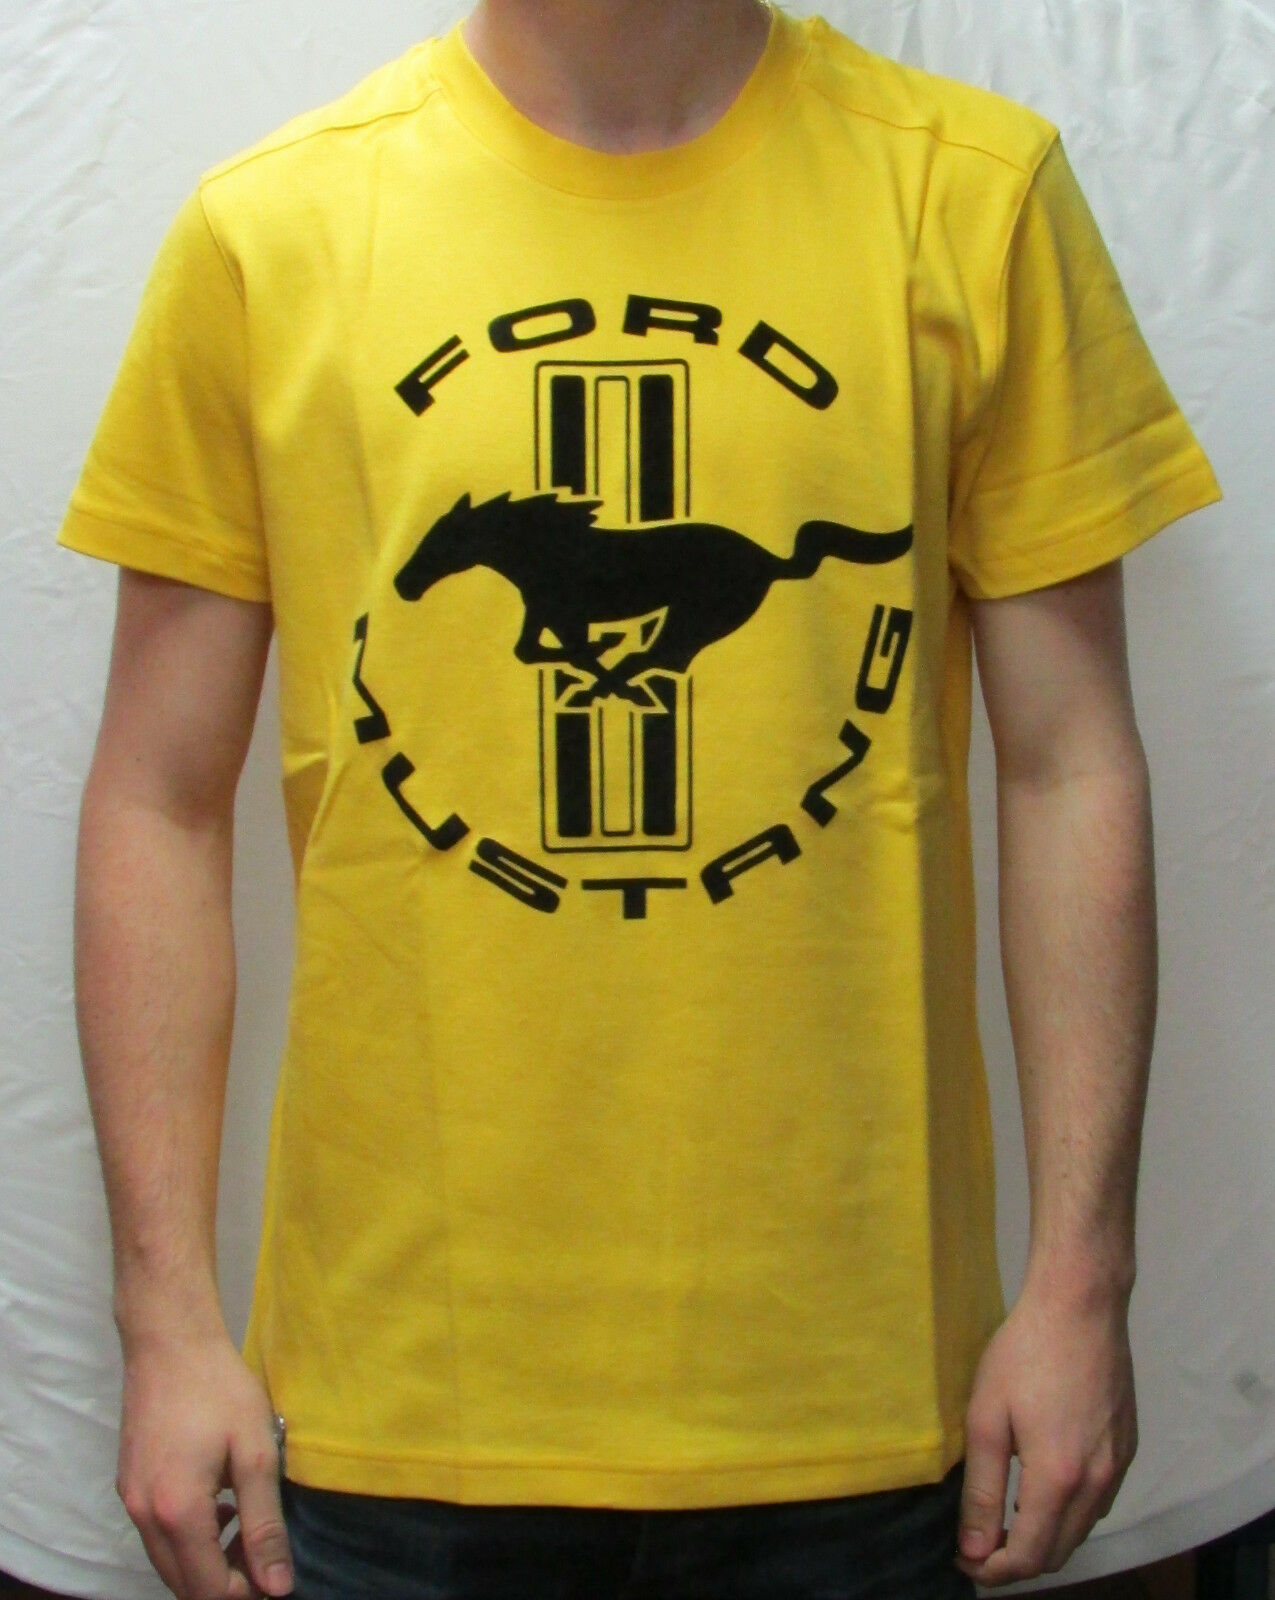 T-Shirt Ford Mustang Yellow Size S 35021292